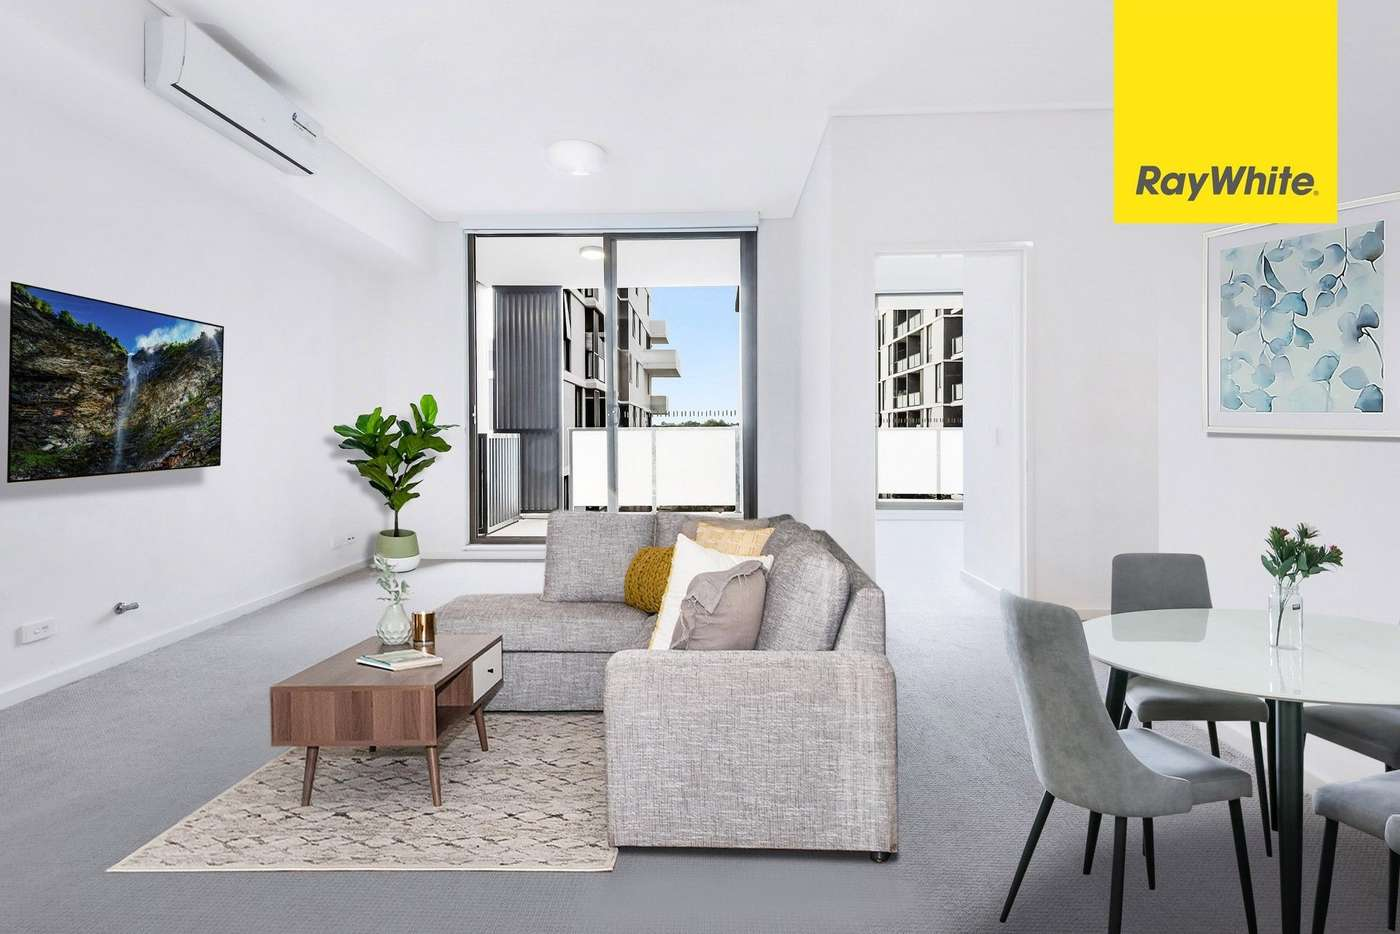 Main view of Homely apartment listing, 307/1 Vermont Crescent, Riverwood NSW 2210